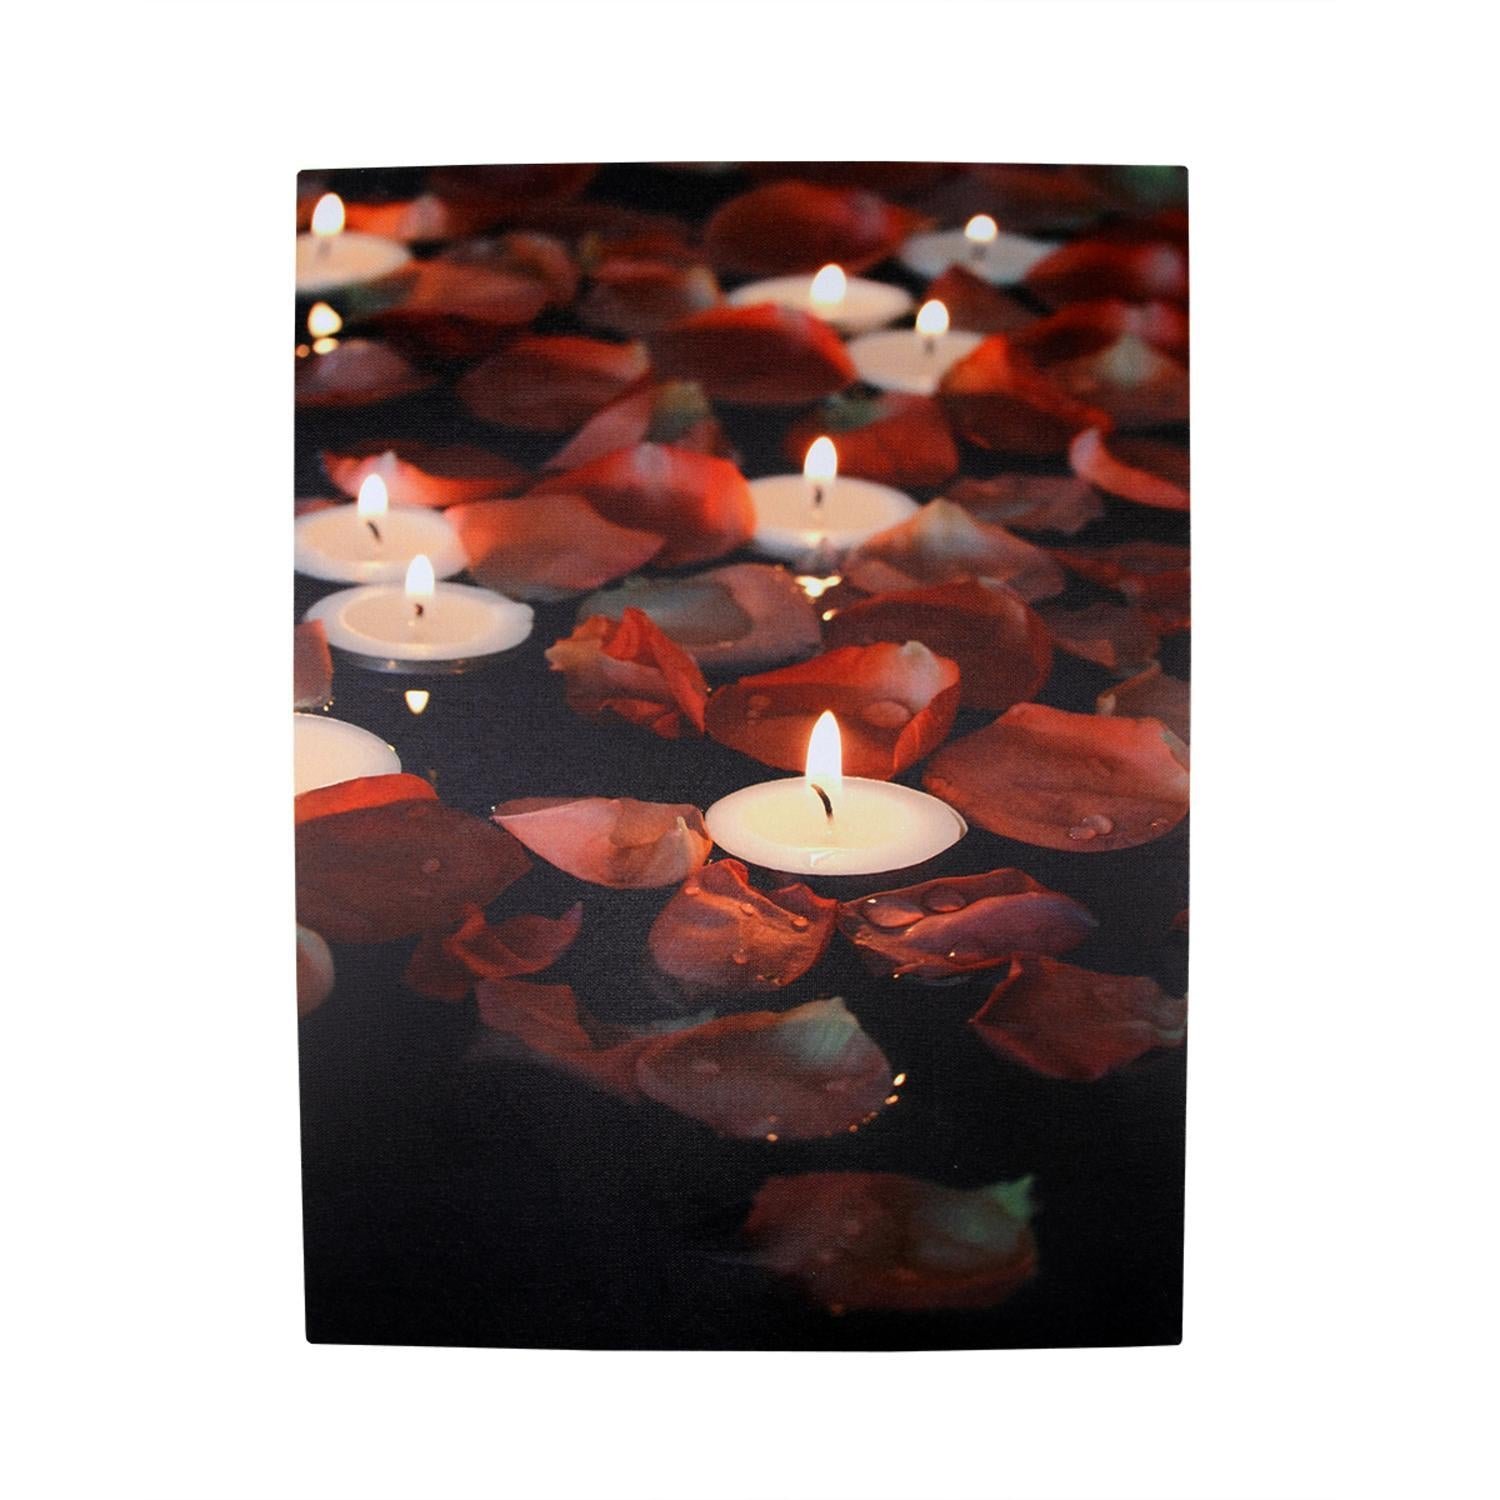 red and white candles and flowers floating in water.